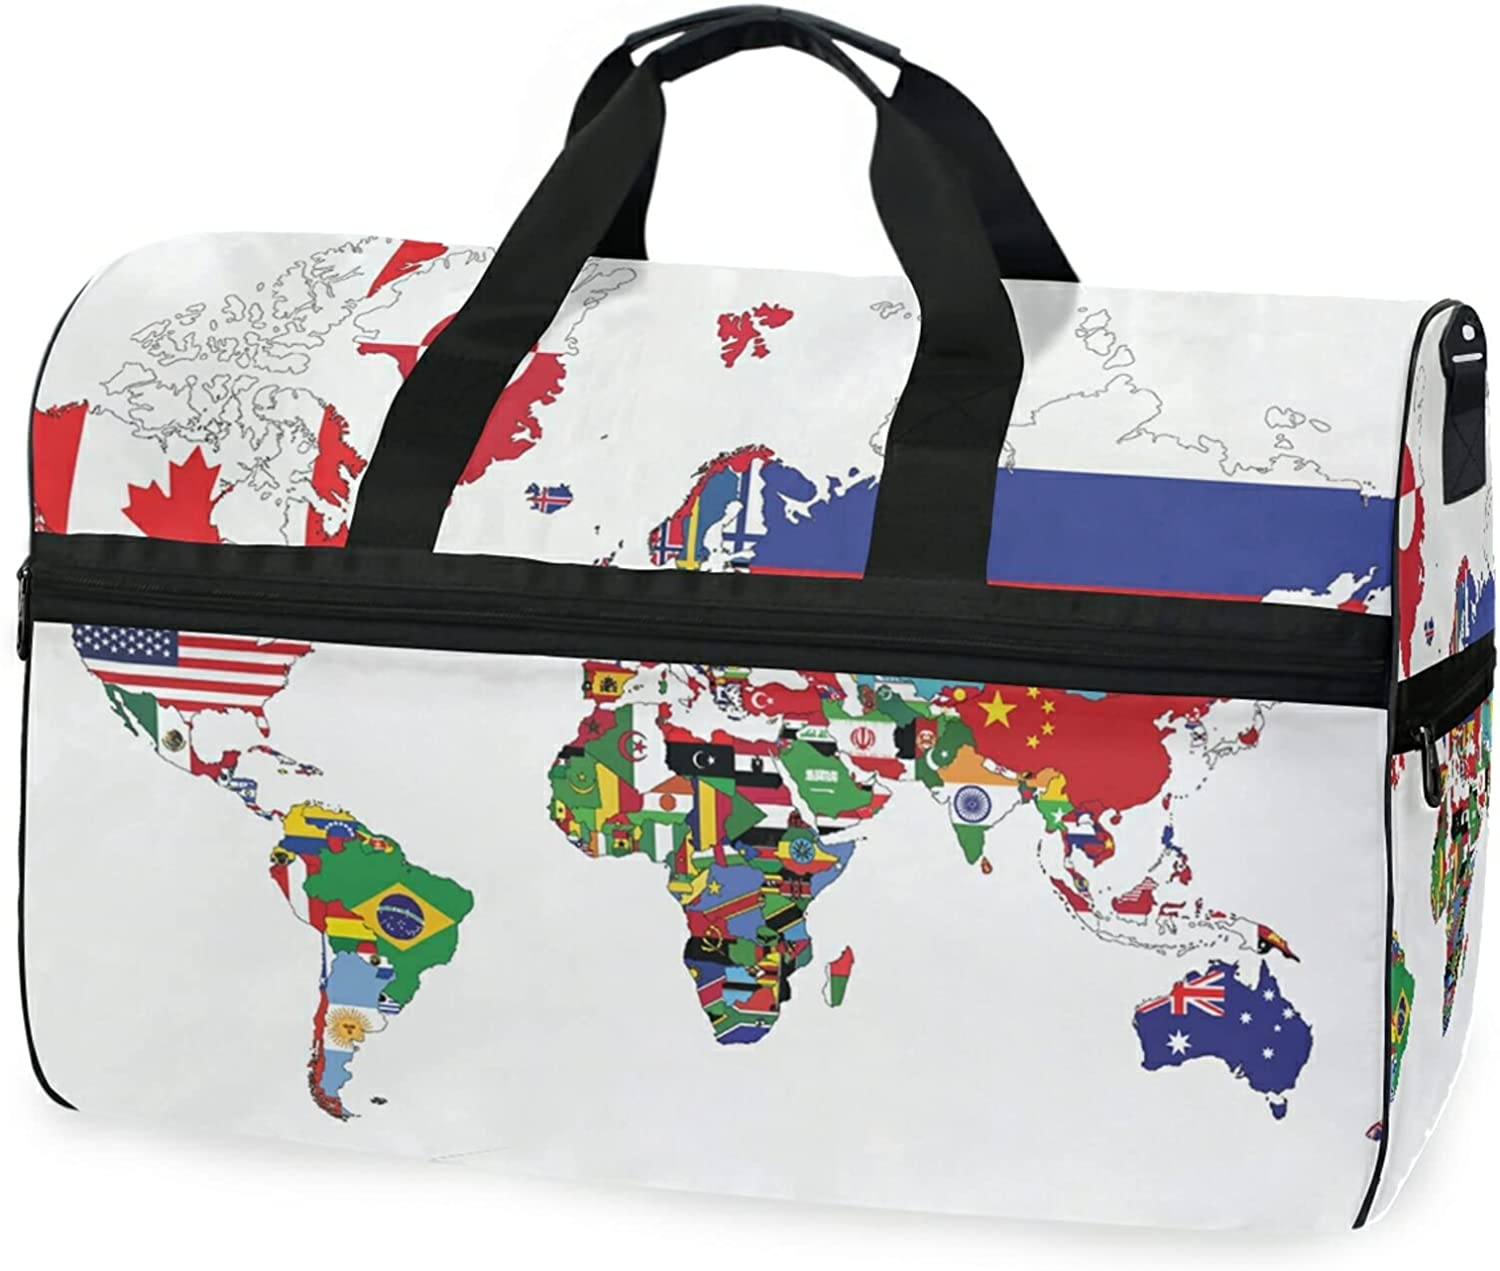 World Map With Country Flags Travel Houston Mall Luggage Gy Super popular specialty store Sports Bag Duffel